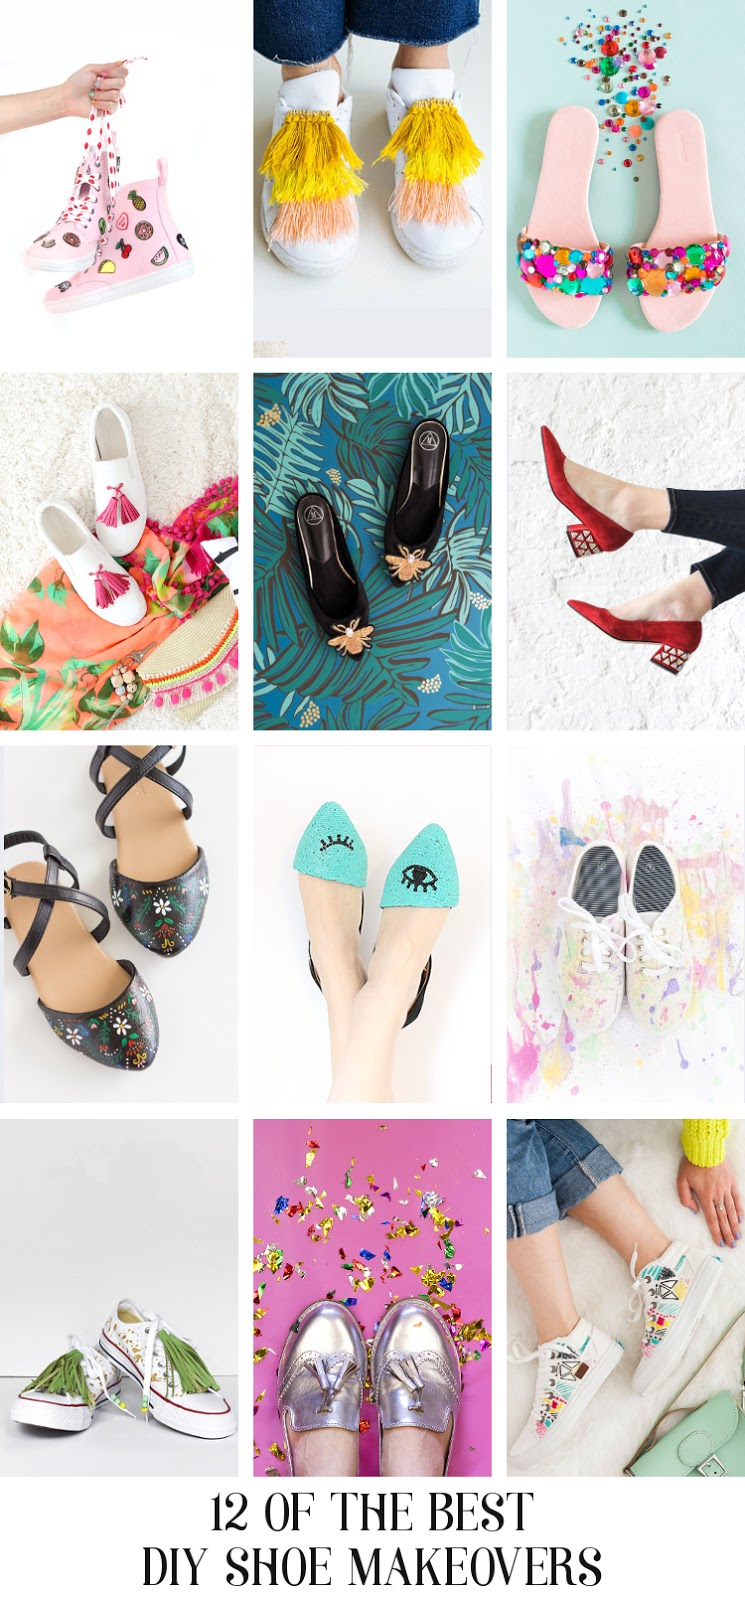 12 OF THE BEST DIY SHOES MAKEOVERS.